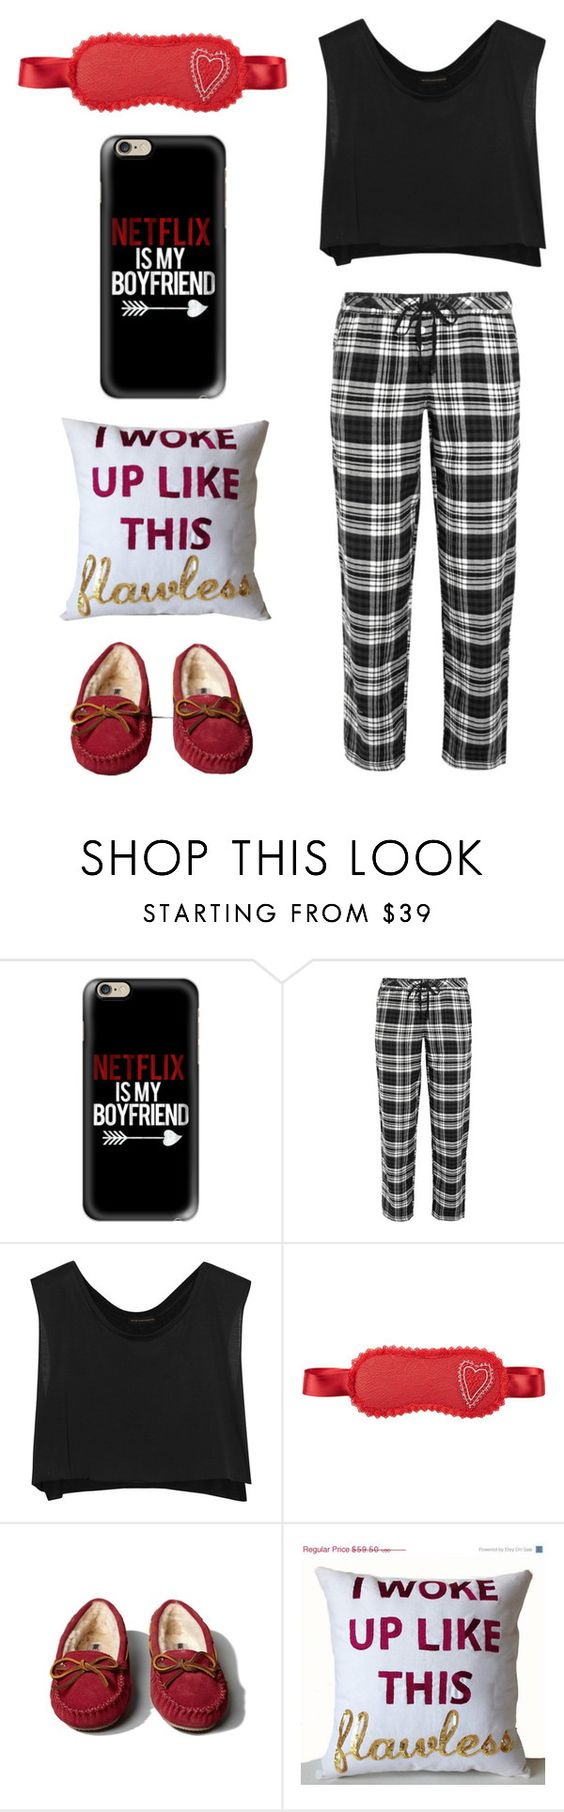 """Those Early Nights"" by alizam313 ❤ liked on Polyvore featuring Casetify, DKNY, Kiki de Montparnasse, L'Agent By Agent Provocateur and Abercrombie & Fitch"